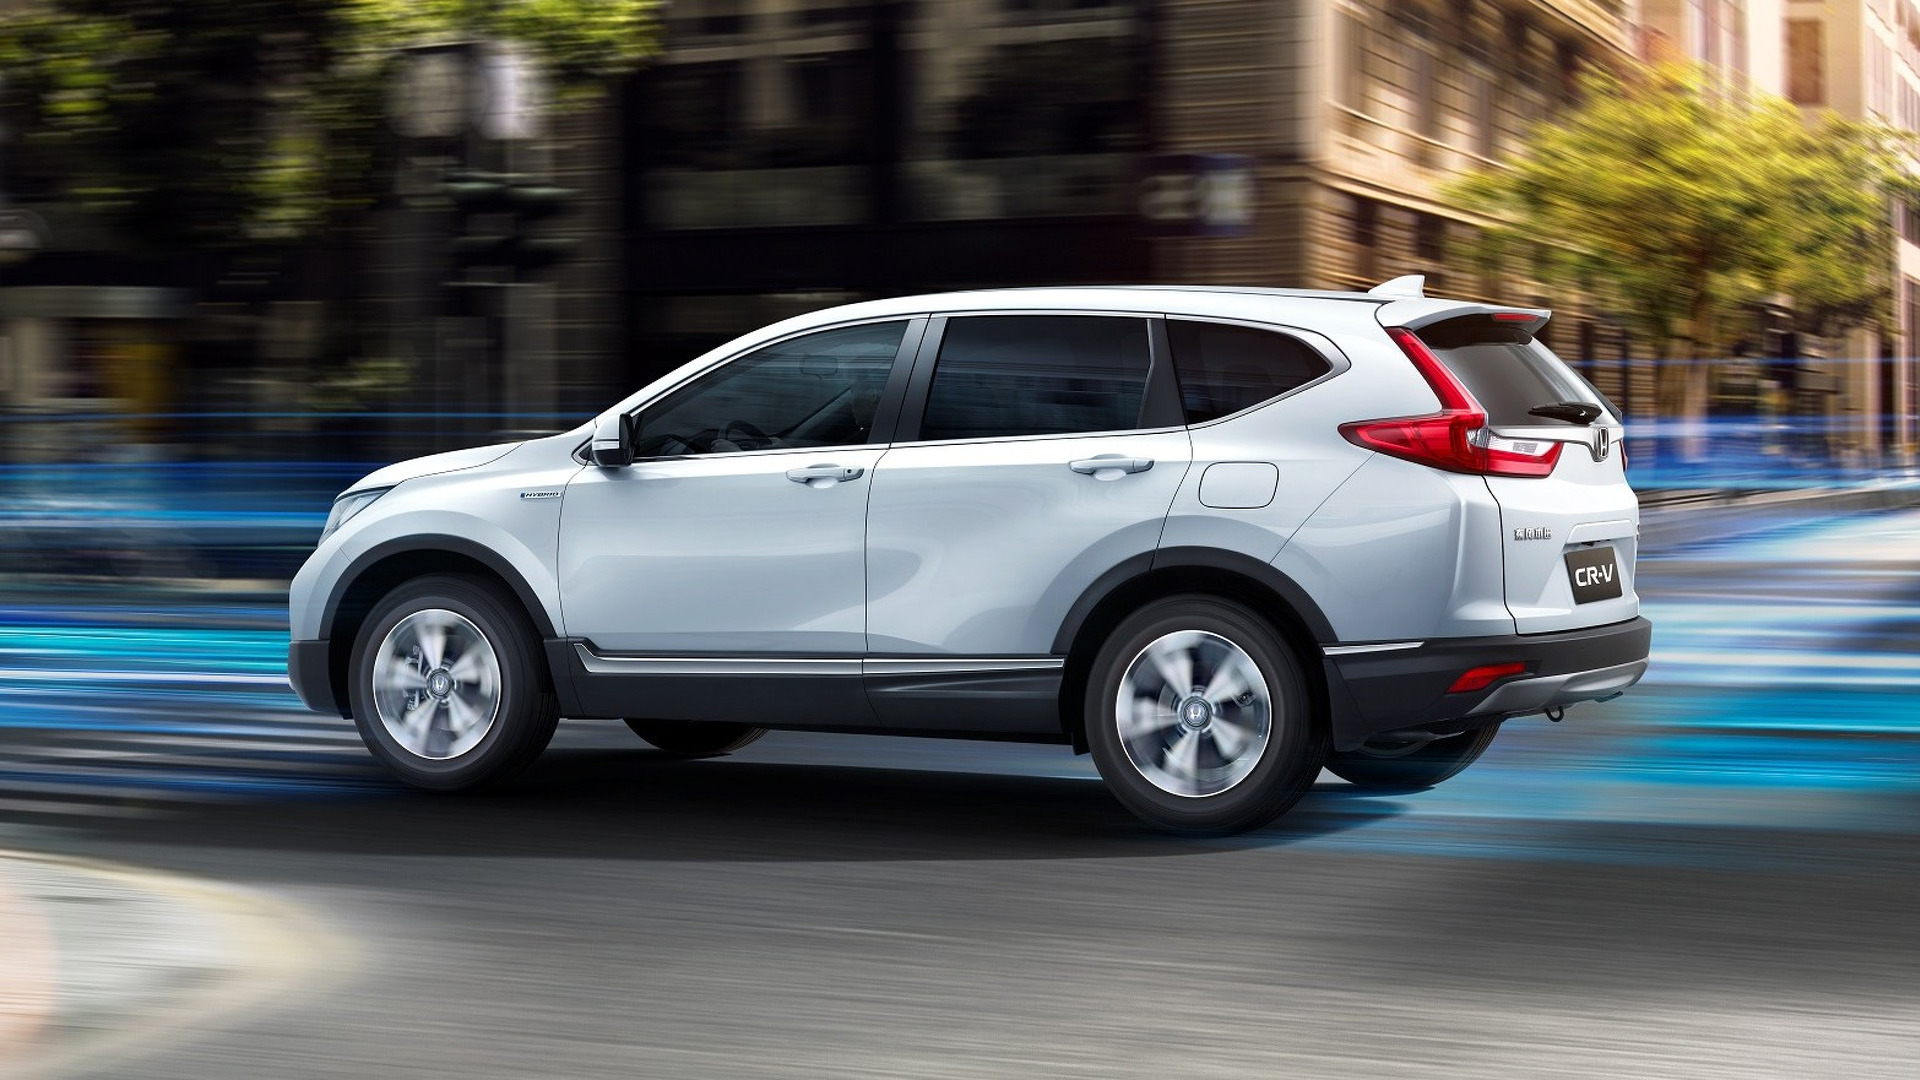 suv magazine honda by difference pictures news car pics the hybrid view yet v official cr have info spec first you of spotted front